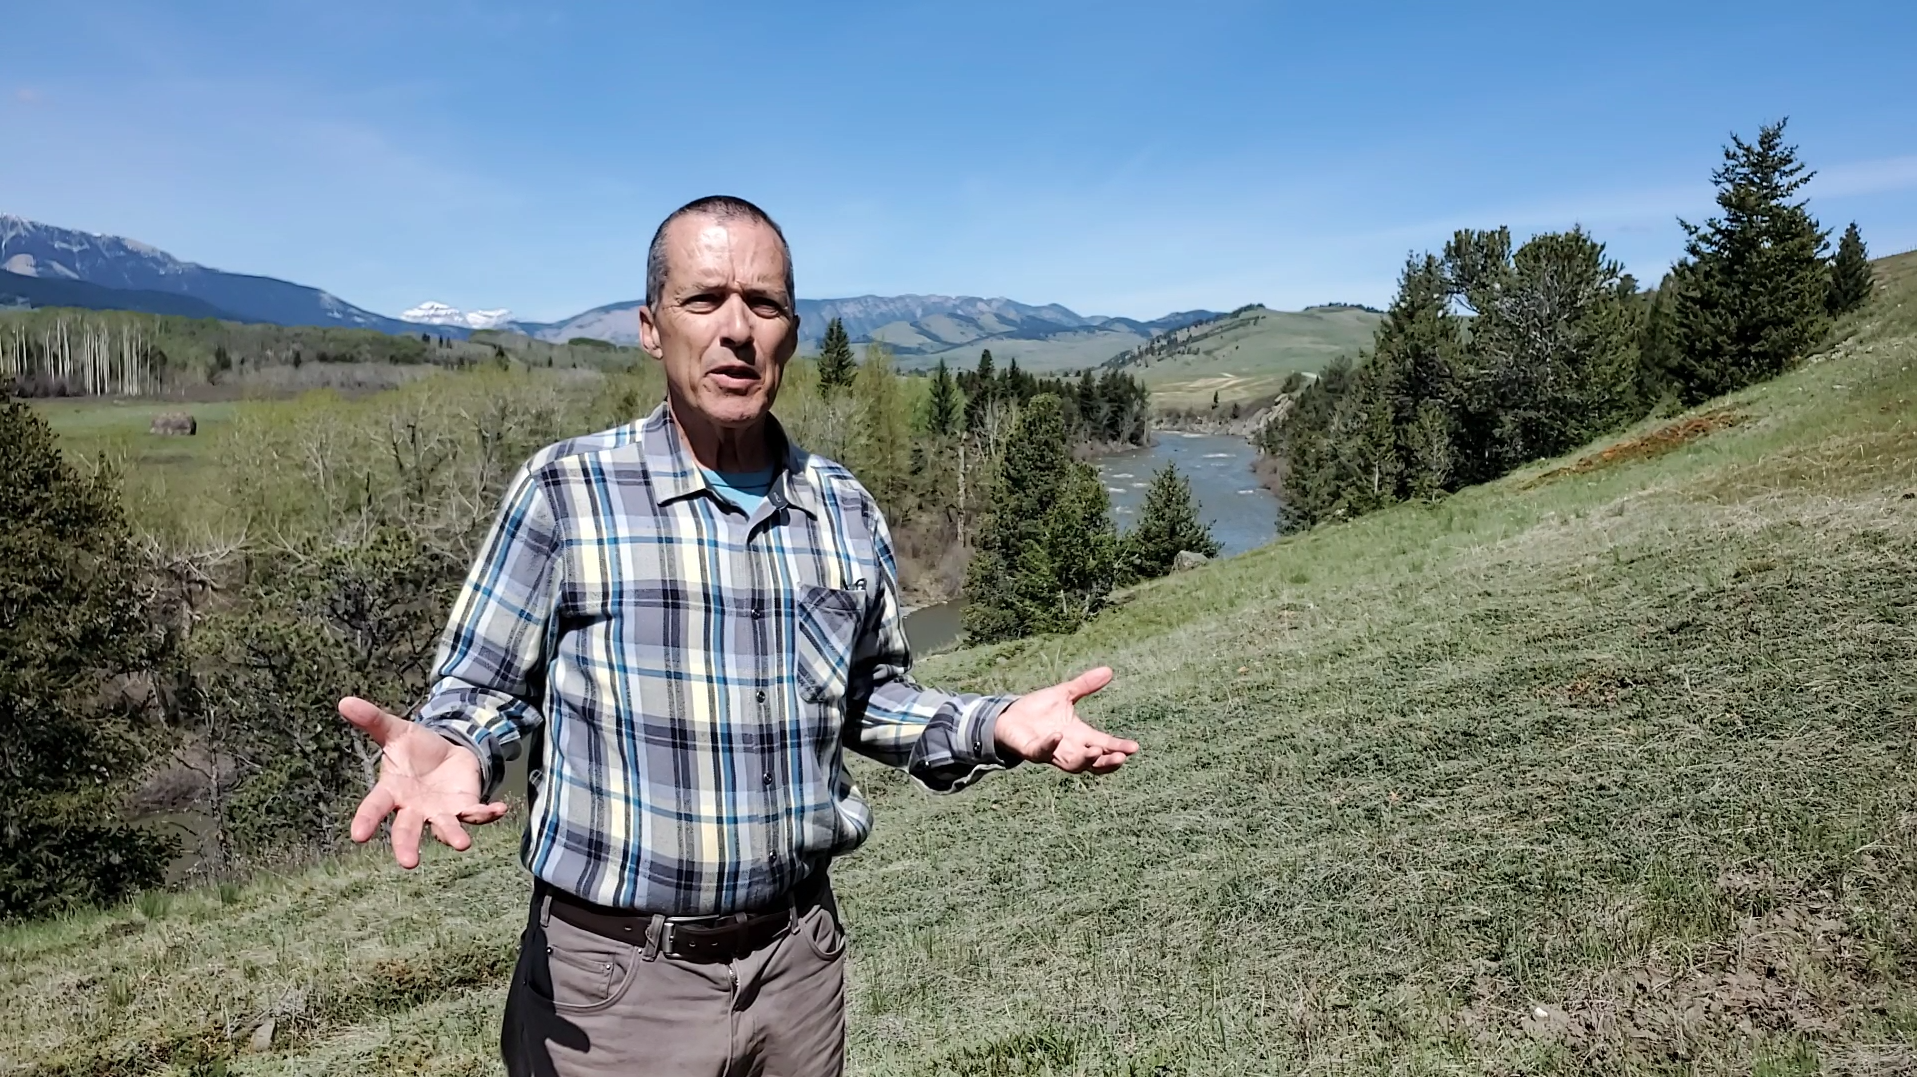 Kevin Van Tighem is a spokesman for the Livingstone Landowners Group, a collection of residents and business owners who advocate for land stewardship in southwestern Alberta. (Robson Fletcher/CBC)